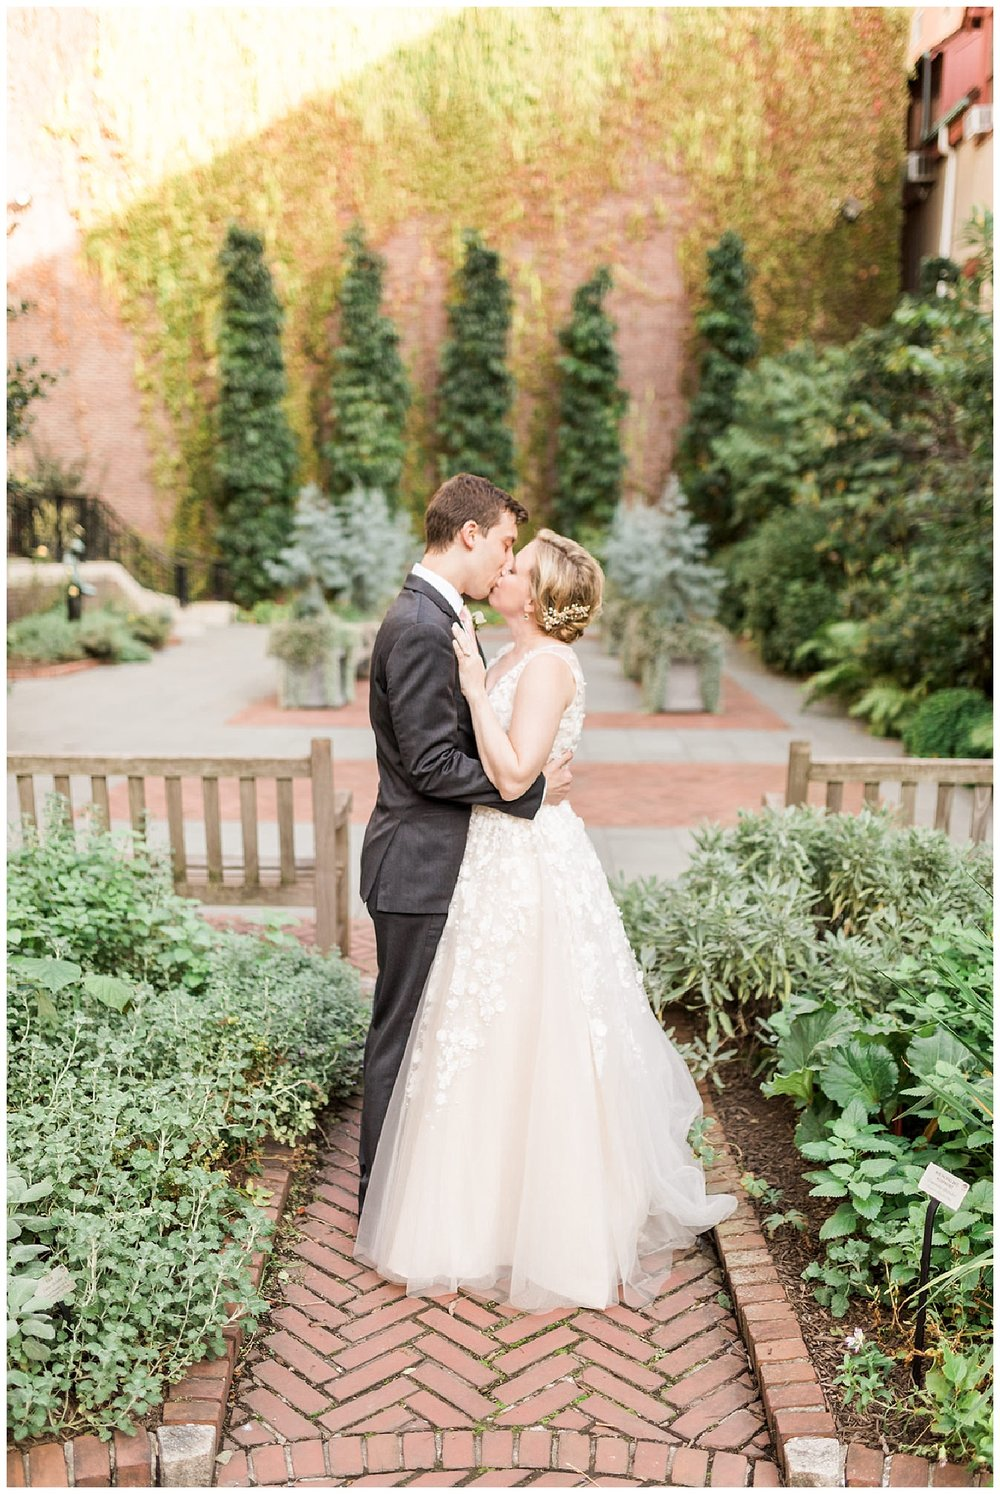 Philly Weddings | Mutter Museum, Philadelphia | The Logan Hotel Philadelphia | www.redoakweddings.com